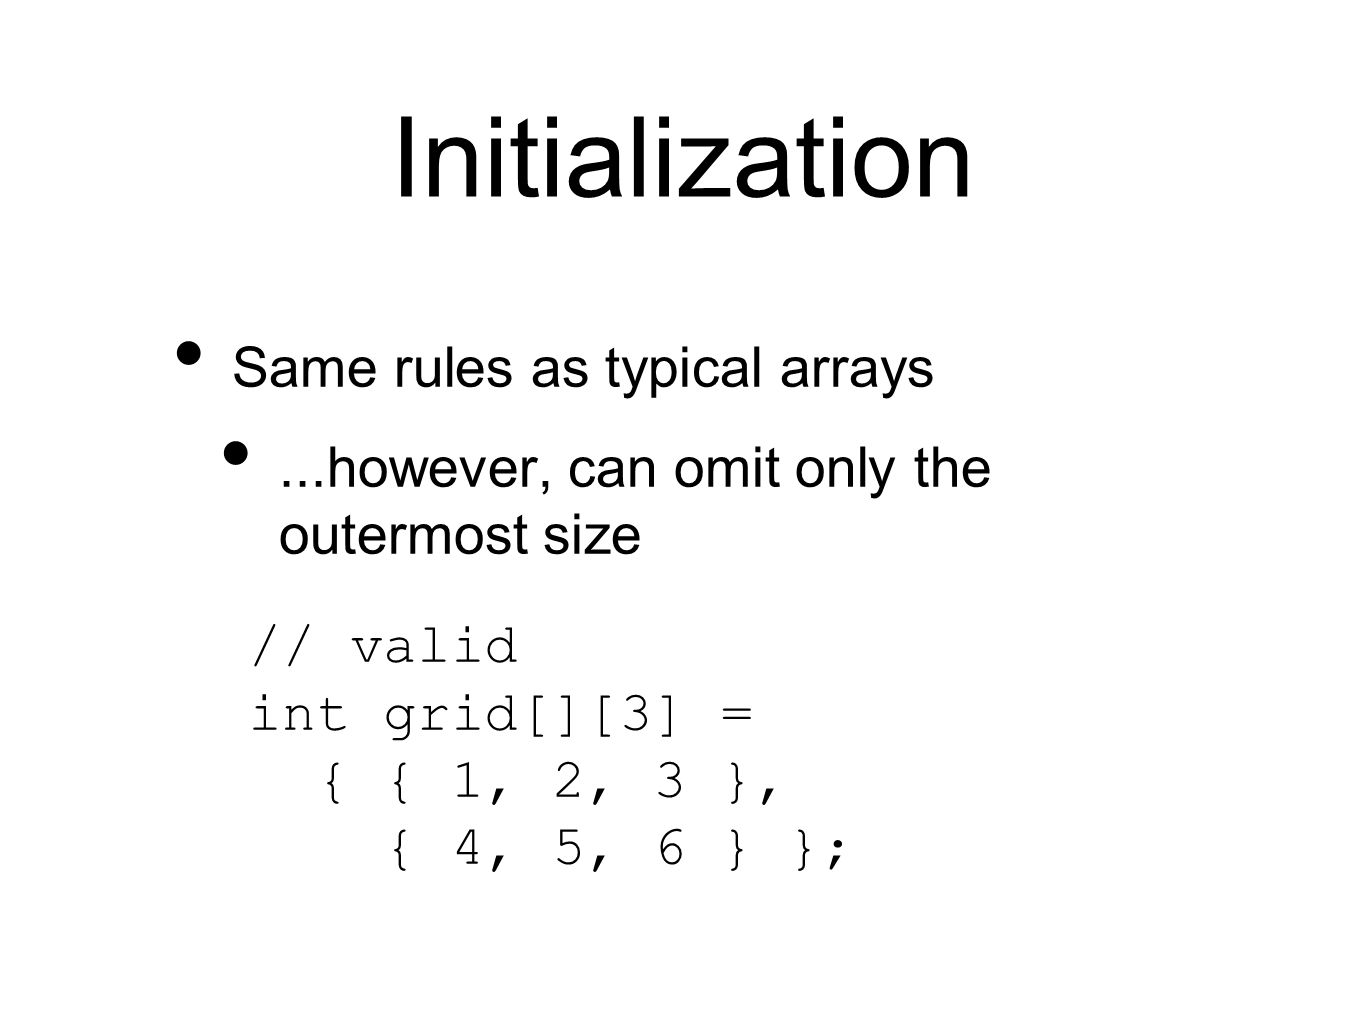 Initialization Same rules as typical arrays...however, can omit only the outermost size // valid int grid[][3] = { { 1, 2, 3 }, { 4, 5, 6 } };